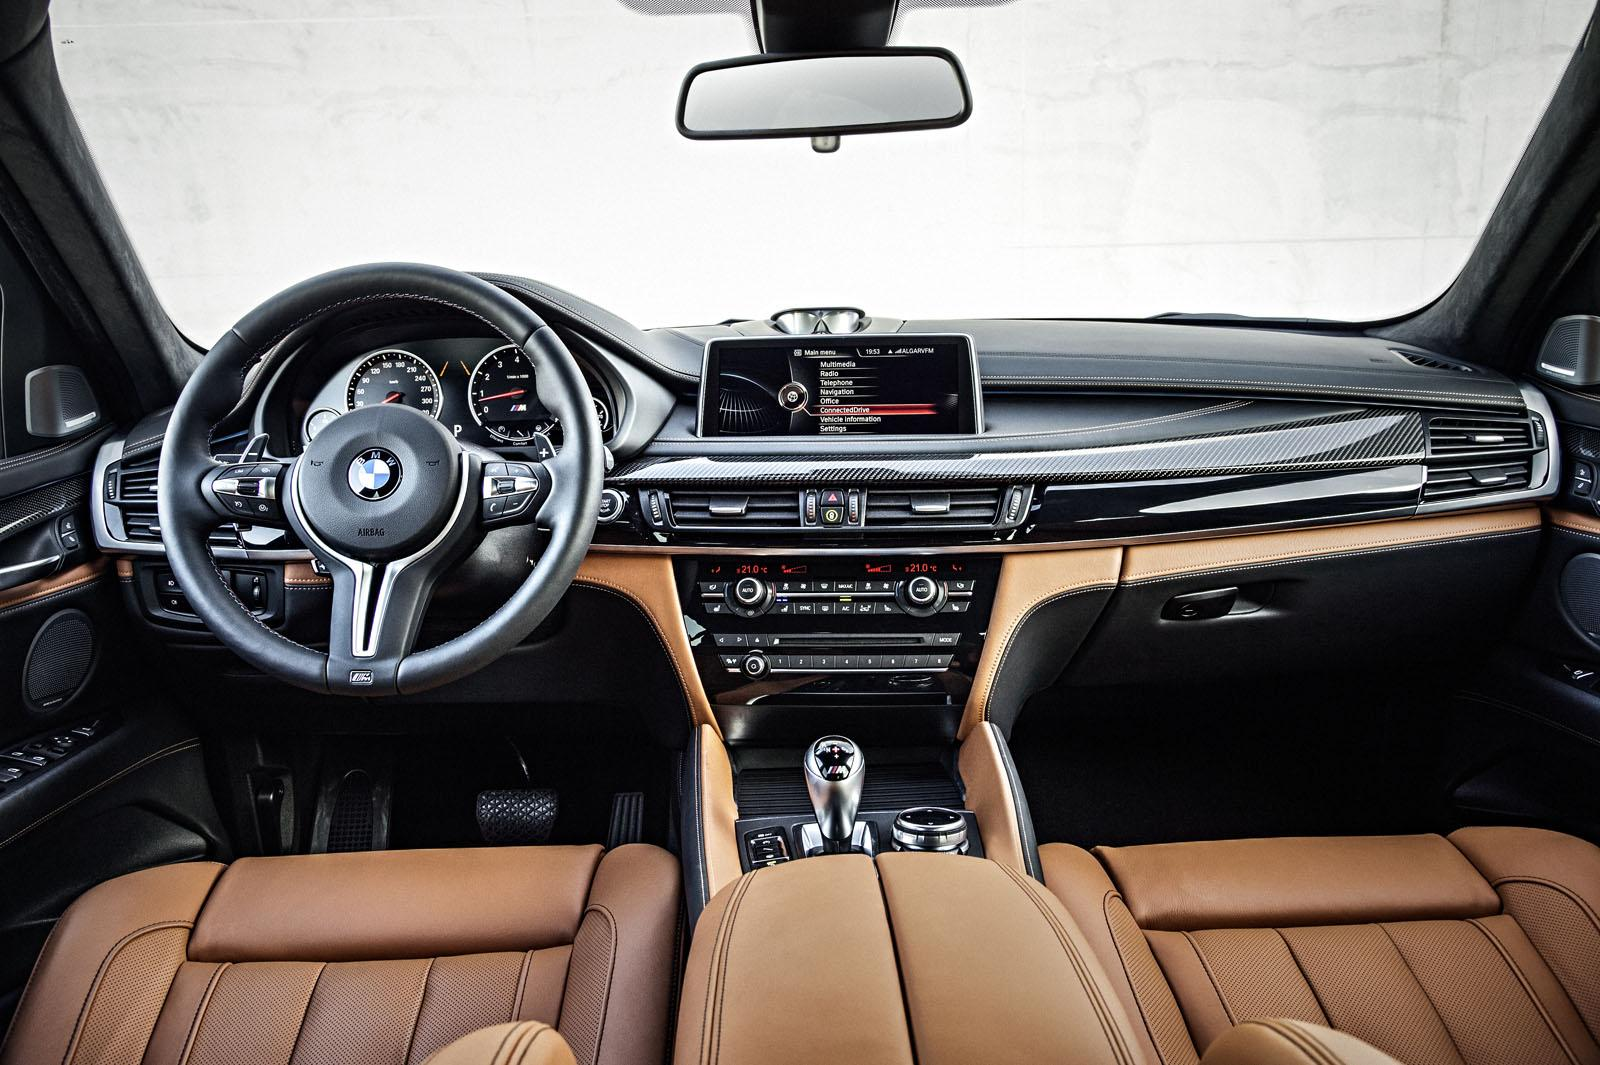 2015 BMW X6 M dashboard